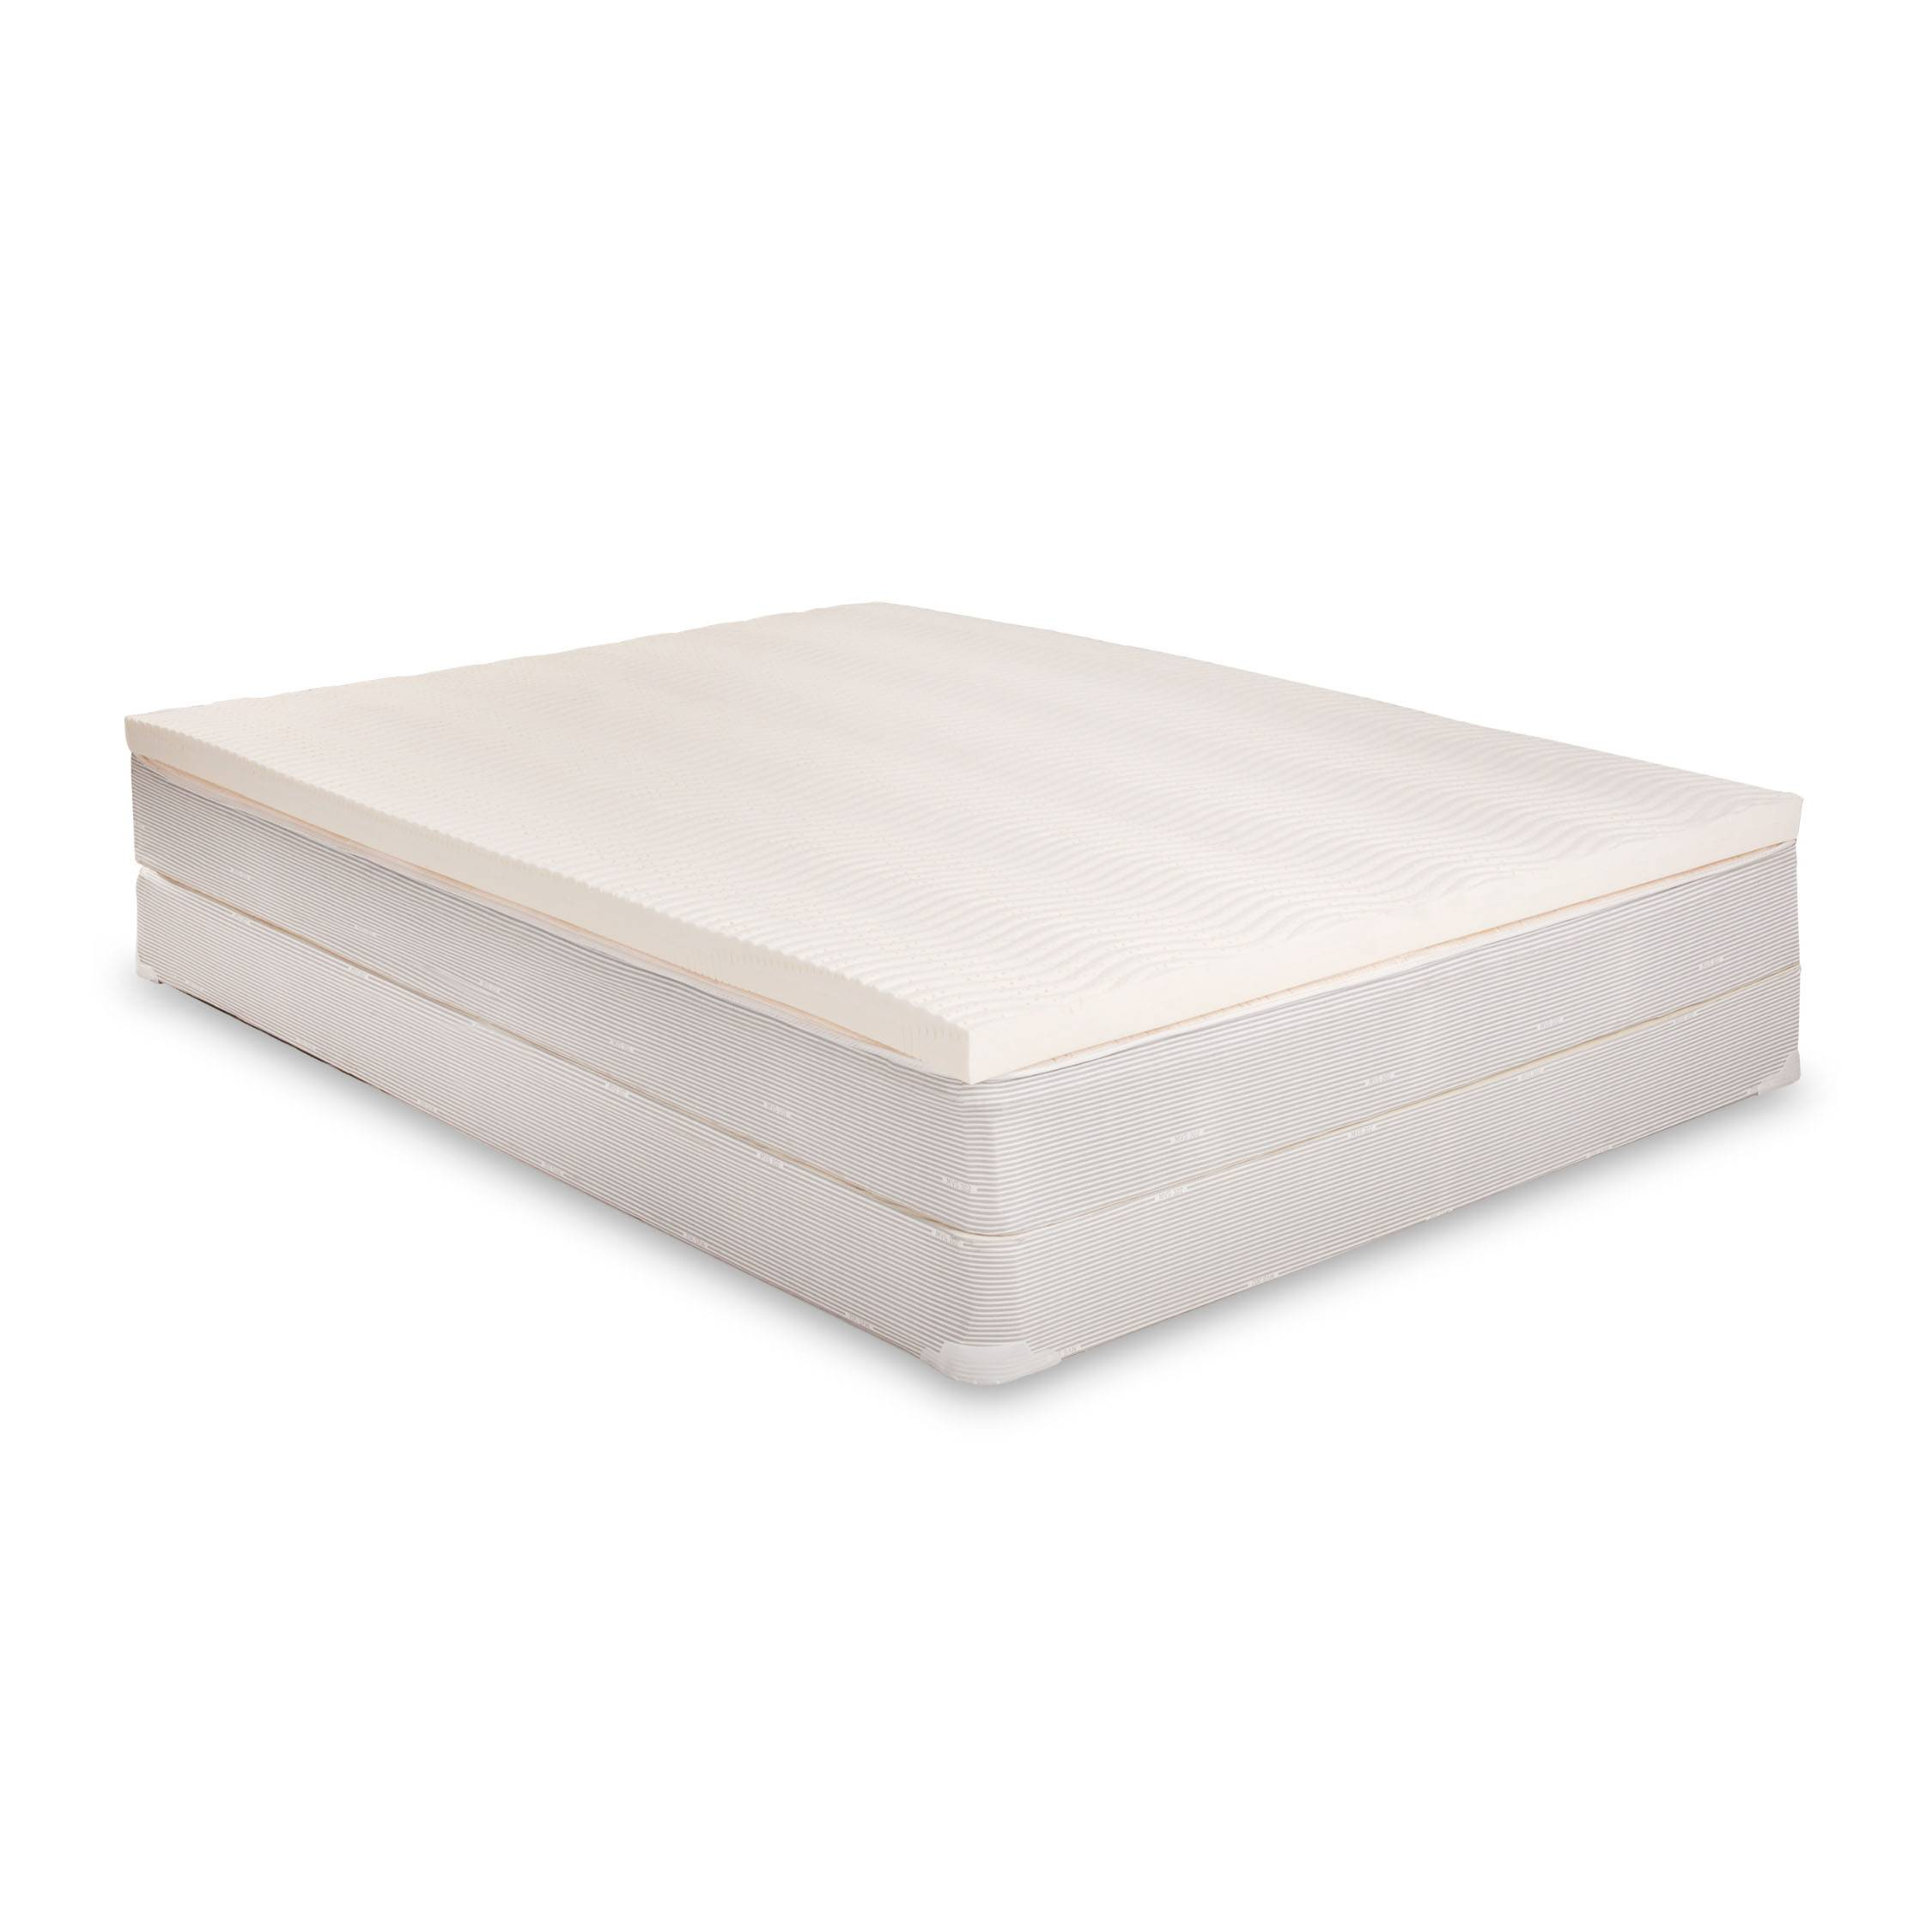 100% Latex Mattress Topper - Size Full XL - Made in the USA Full XL White